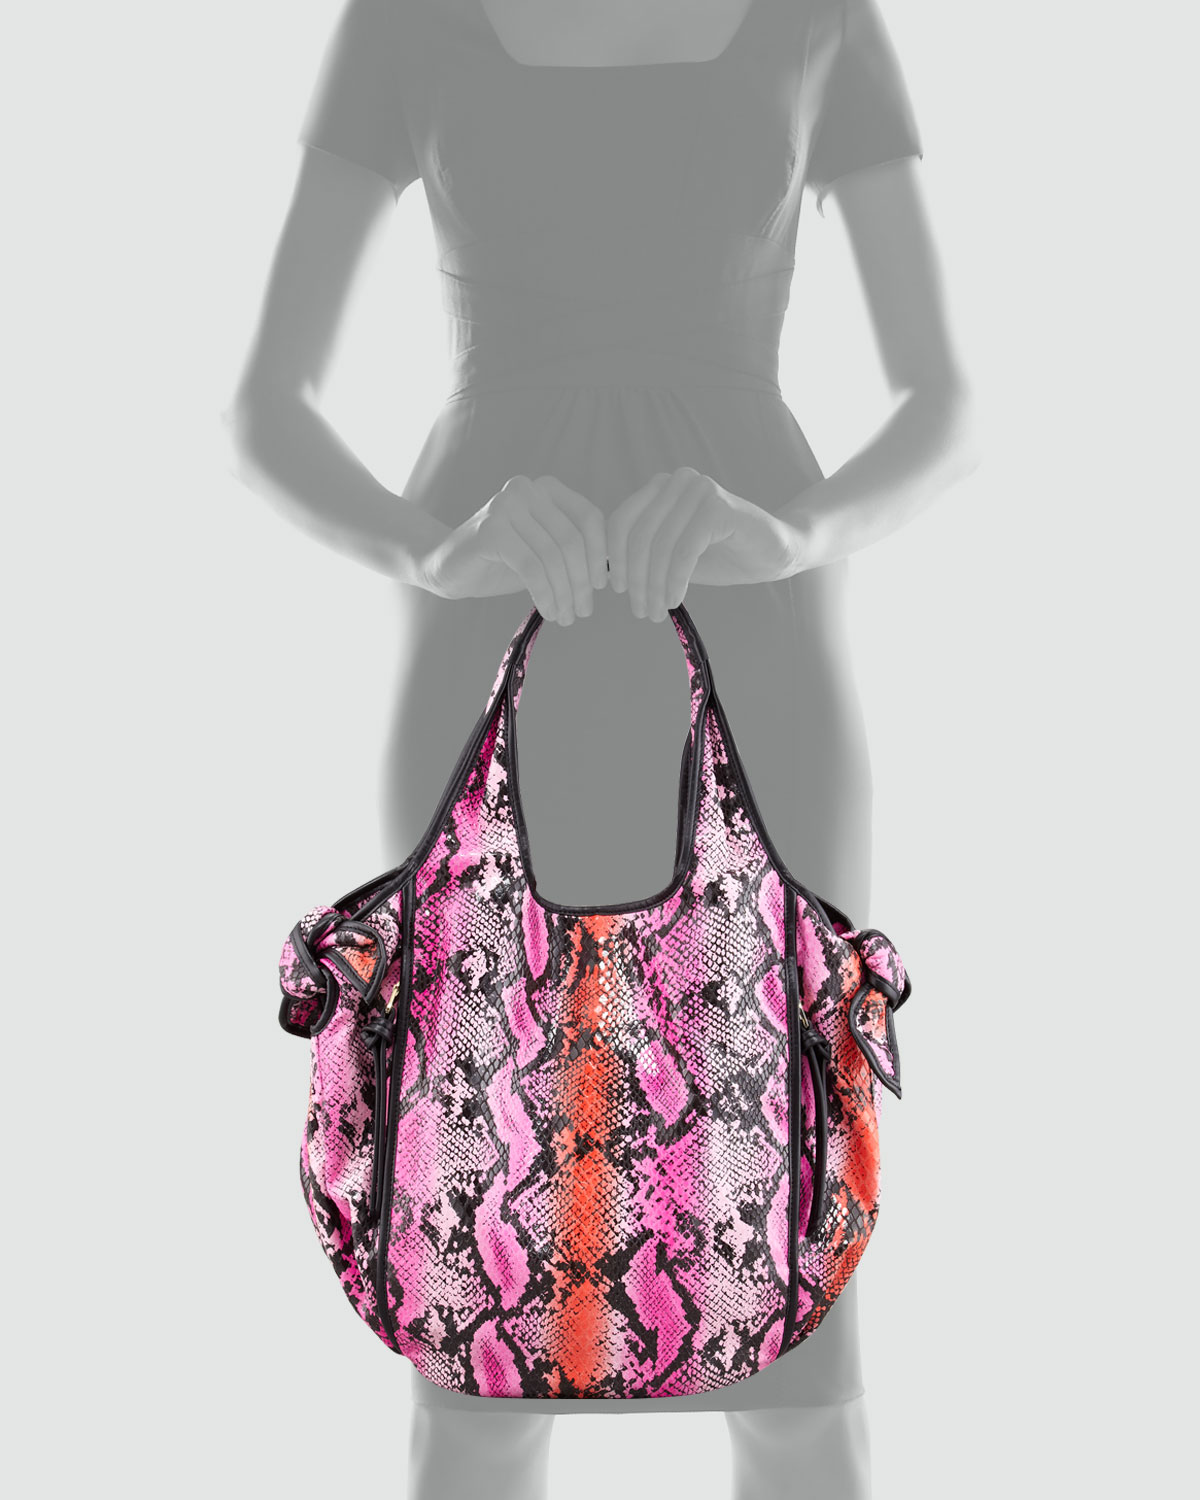 Lyst - Kooba Carmine Knot Tote Bag Pink in Purple 5ad6670663